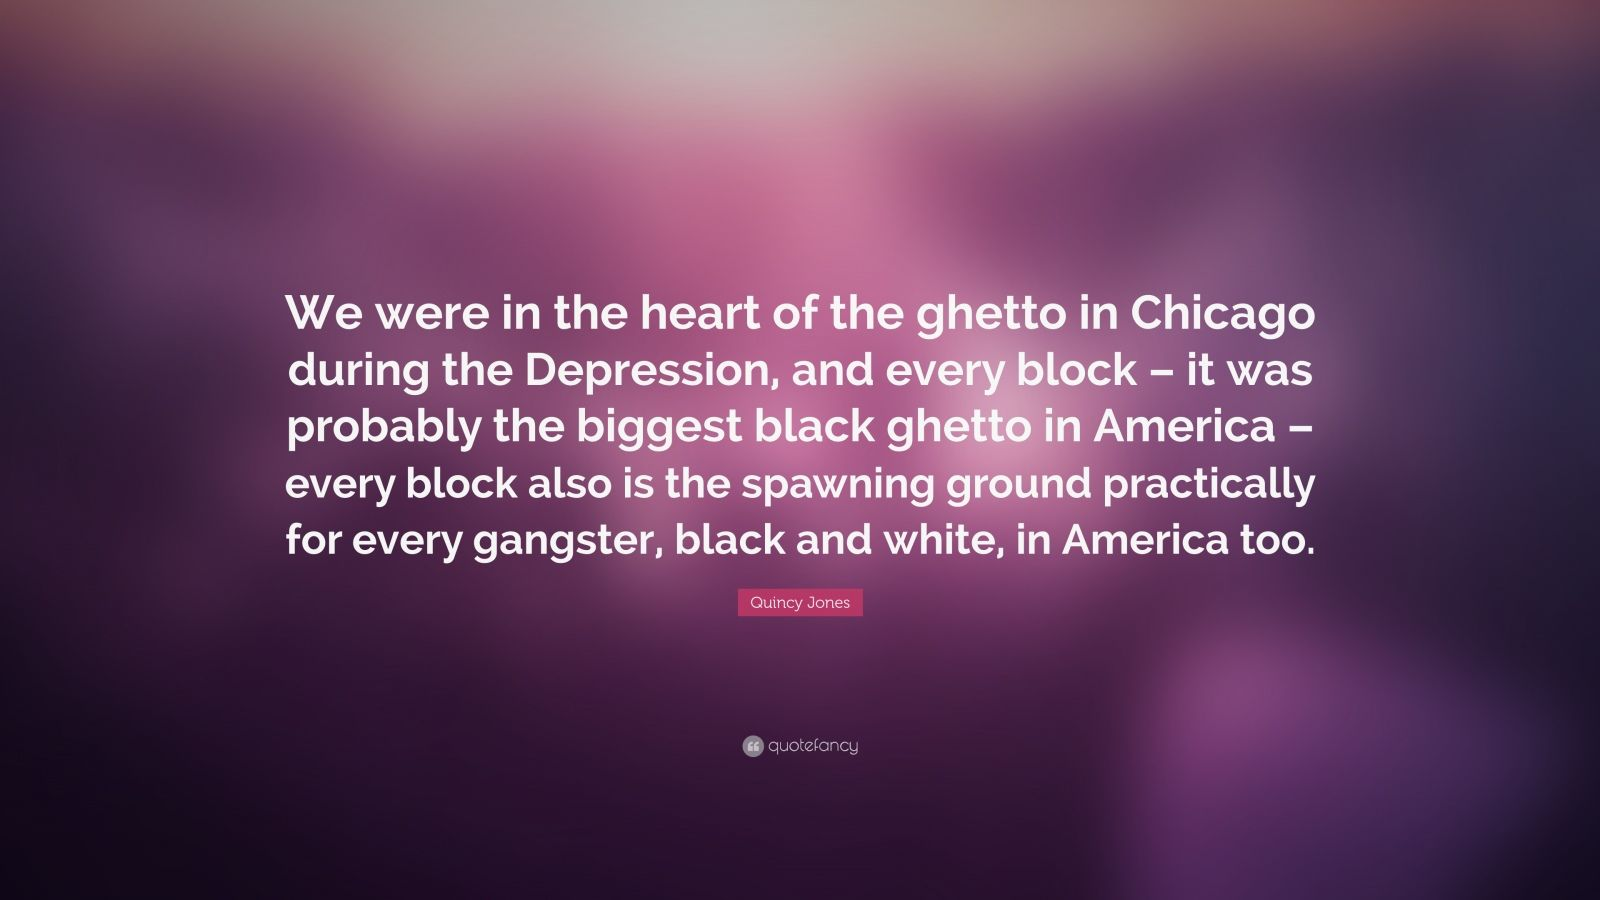 quoting a poem in an essay chicago